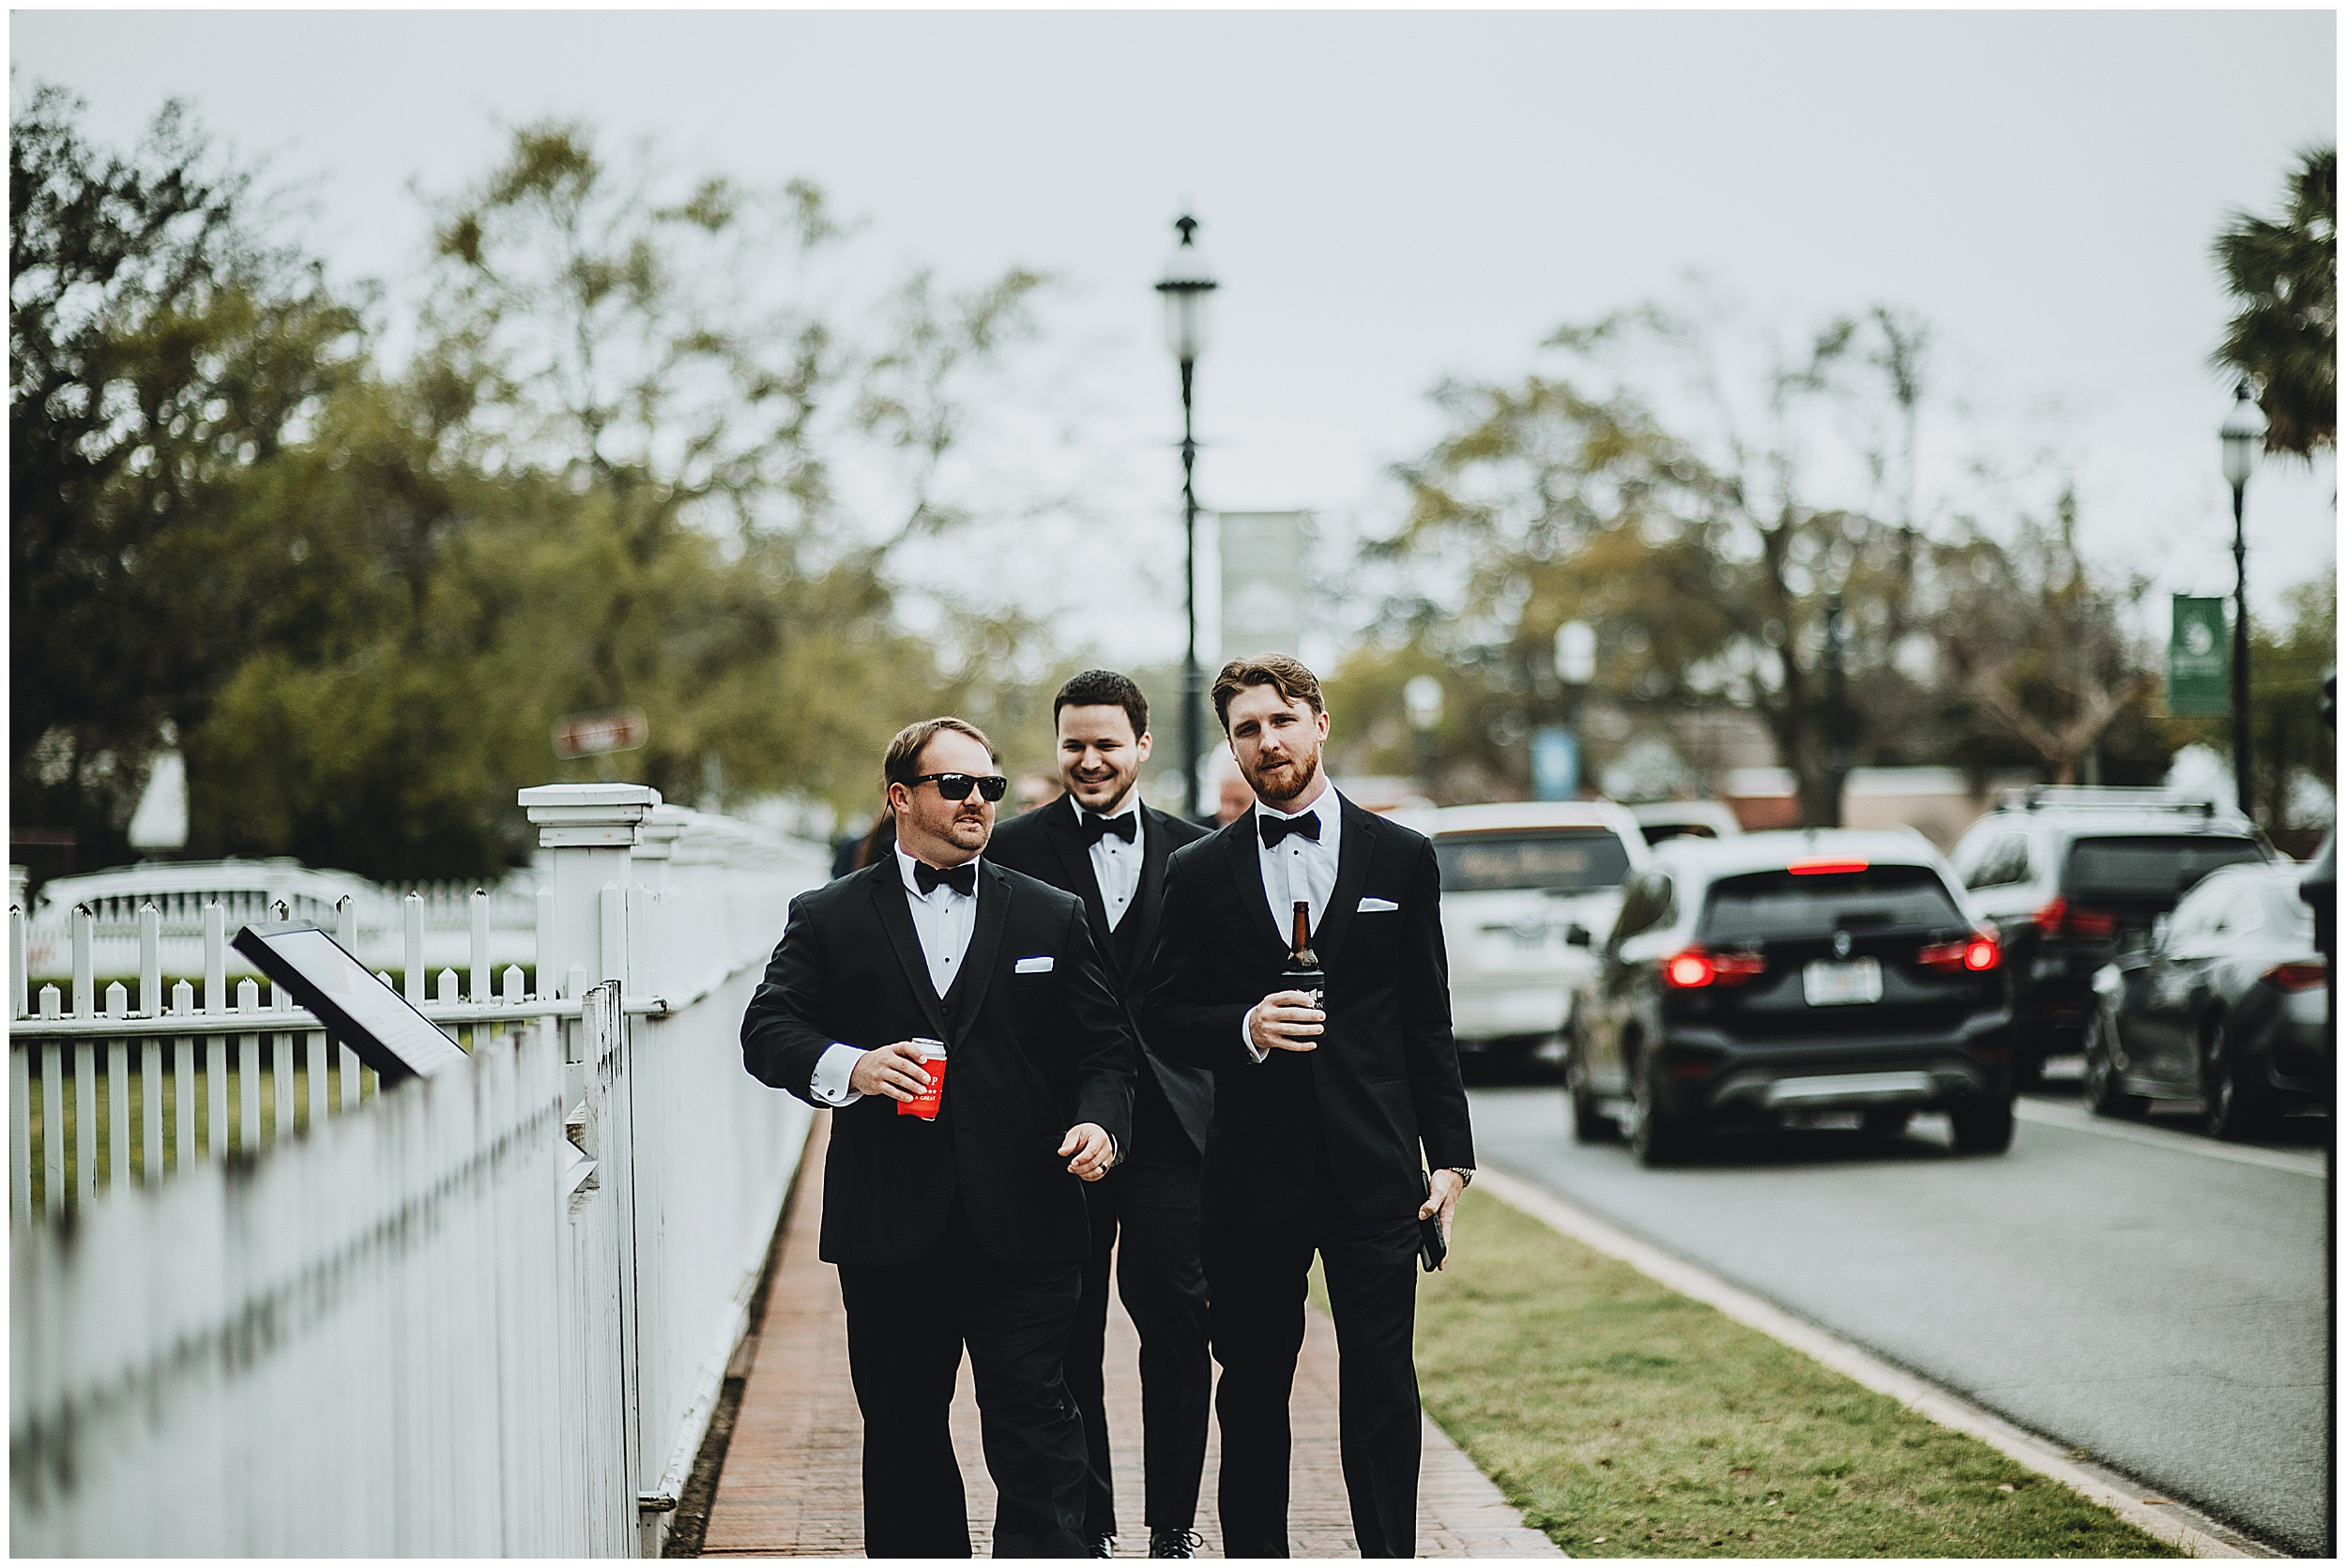 Wedding in Pensacola, Florida at Old Christ Church and Palafox House by Jordan Burch